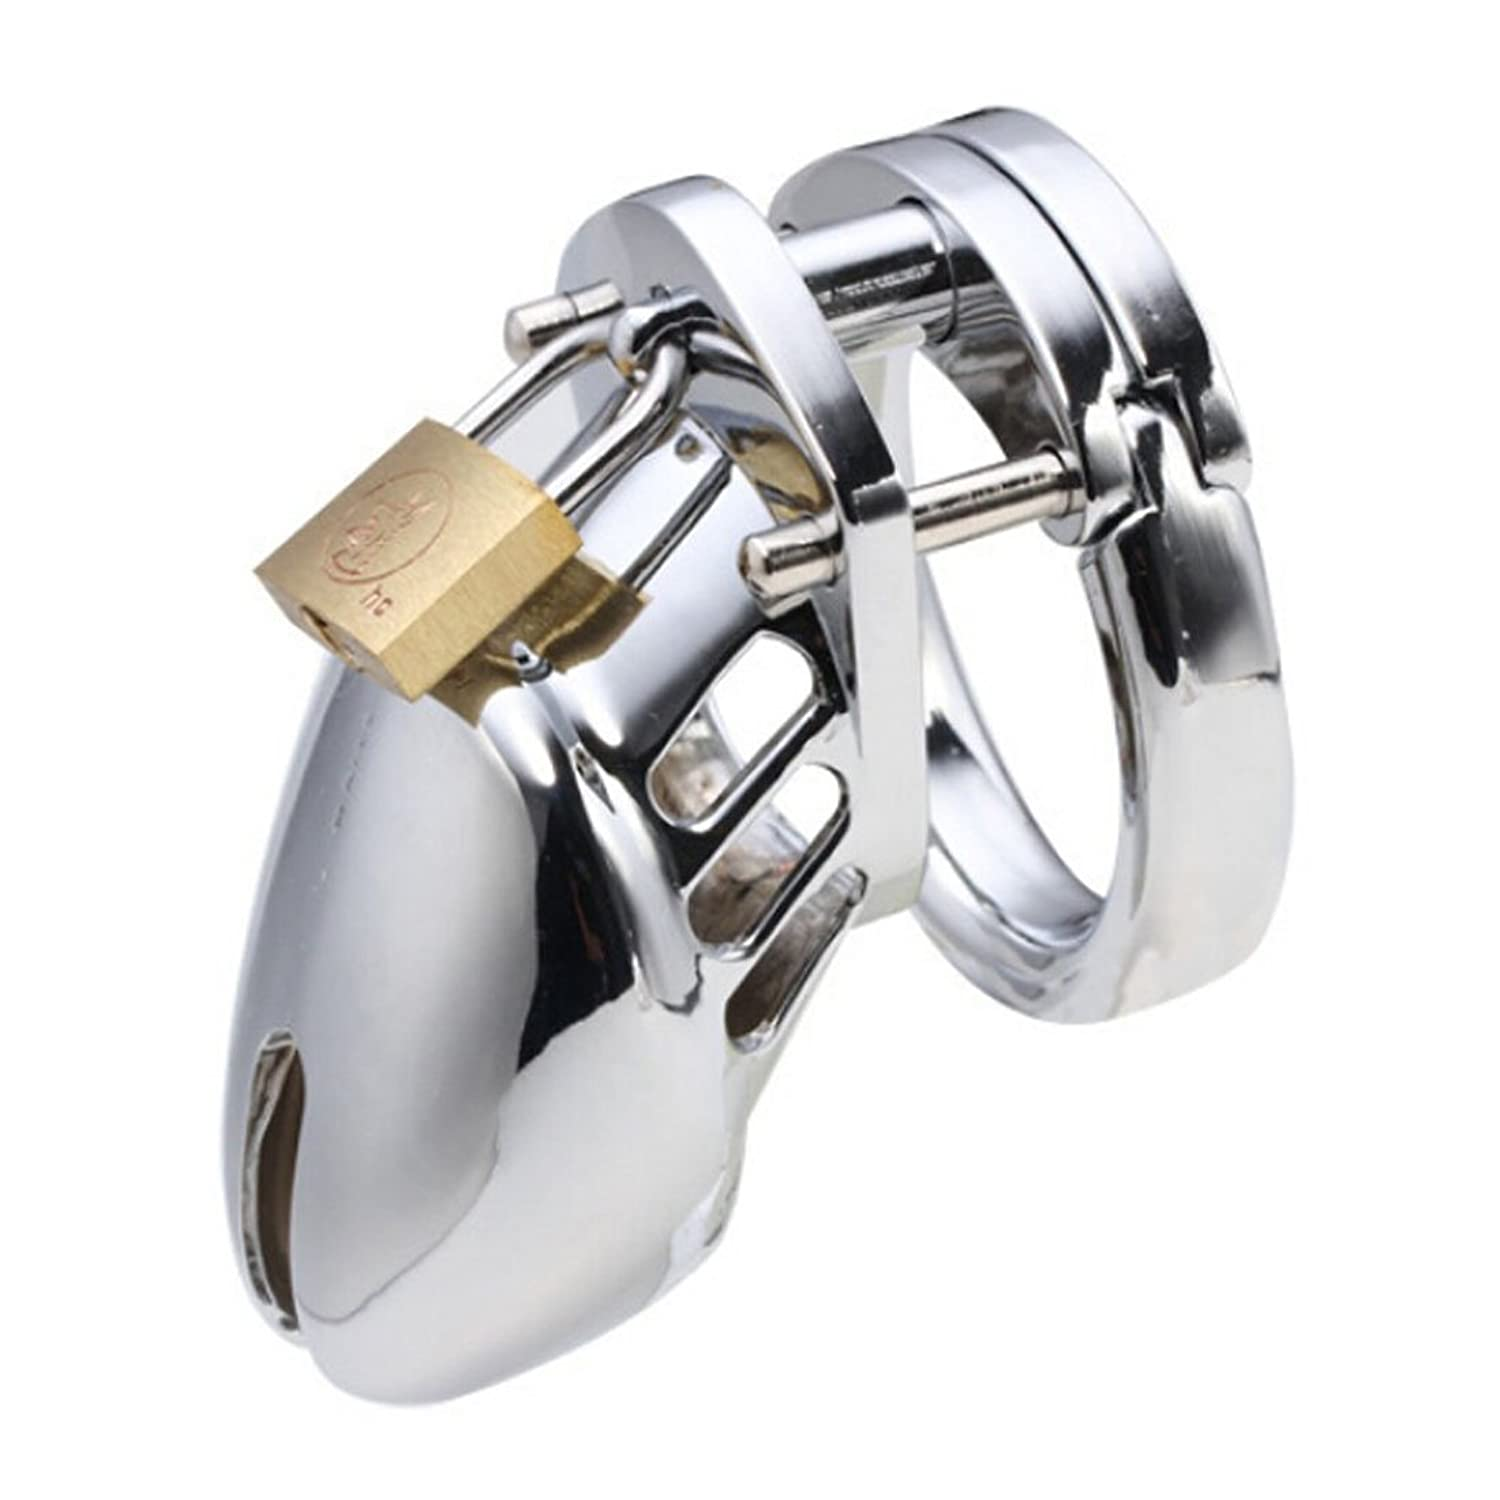 Yocitoy Male Locking Short Design Chastity Adult Sex Toys Defend Chastity